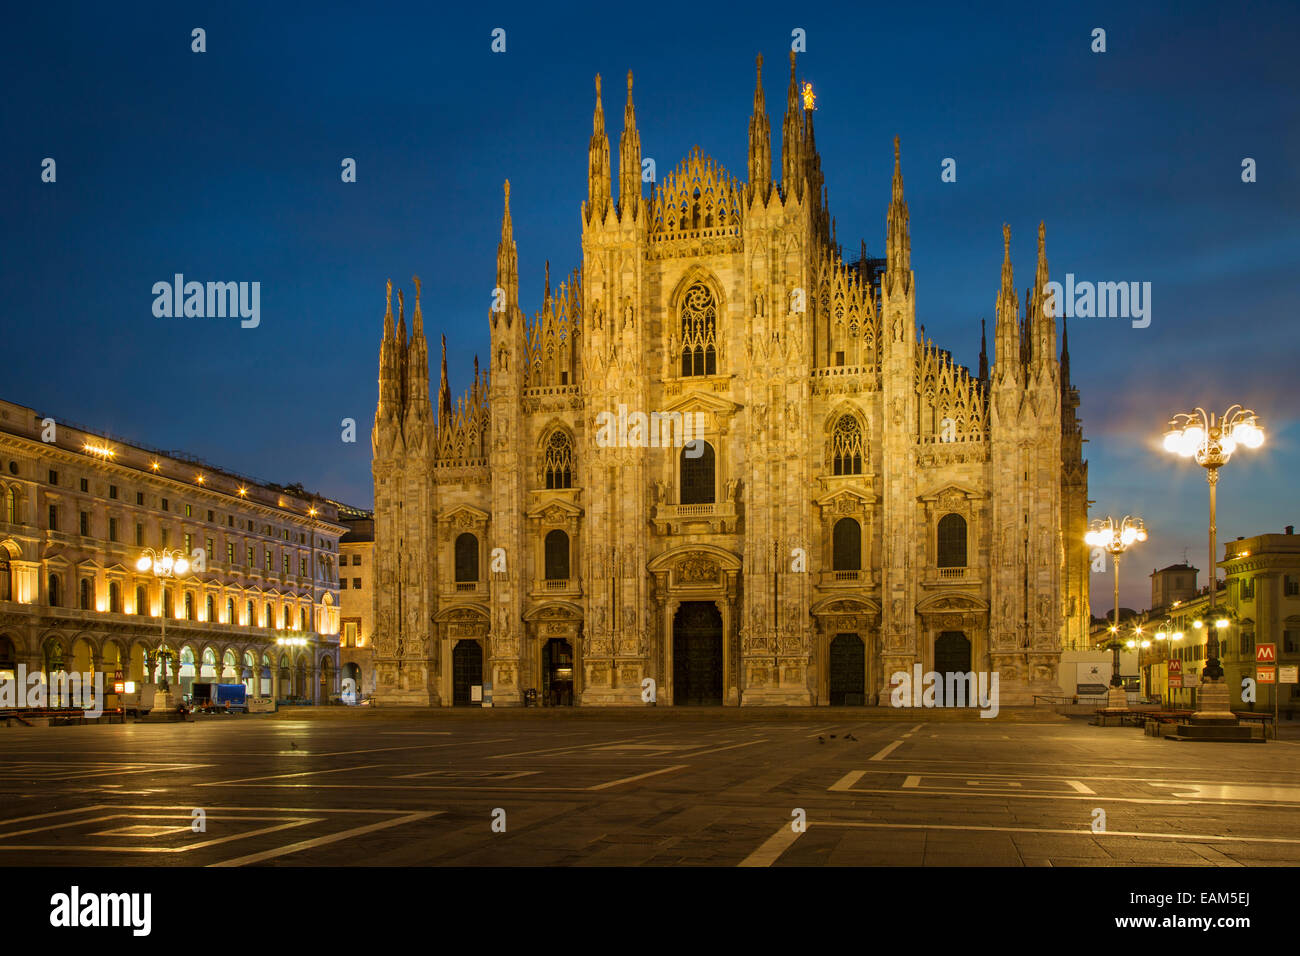 Pre-dawn light at the Cathedral in Piazza del Duomo, Milan, Lombardy, Italy Stock Photo